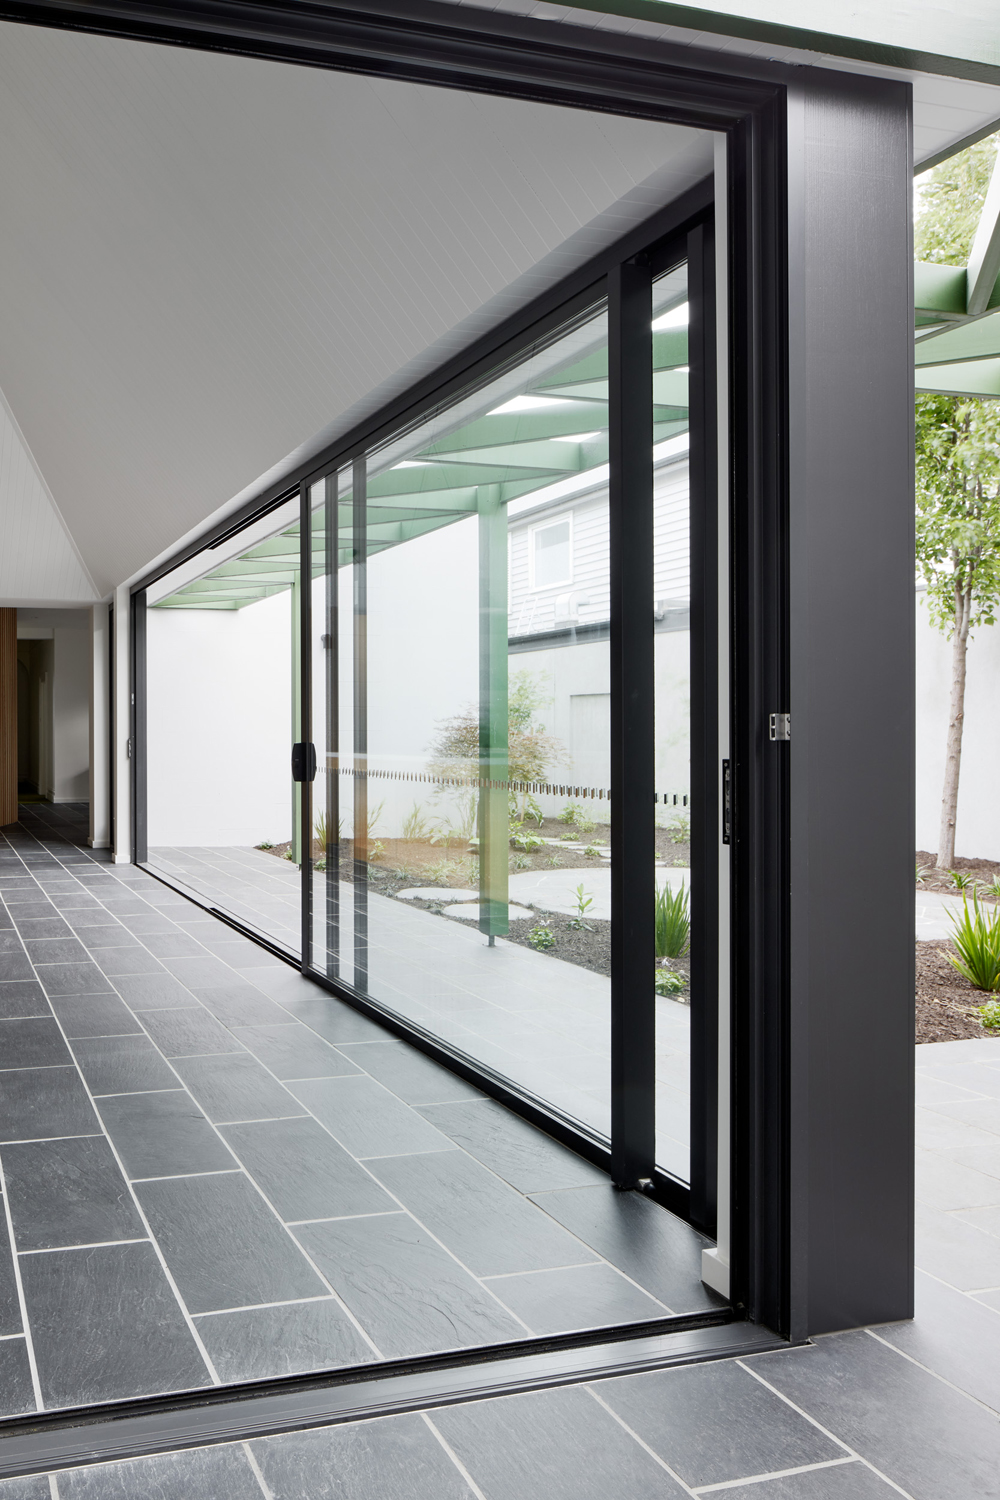 Rylock's innovative sliding door joining block system